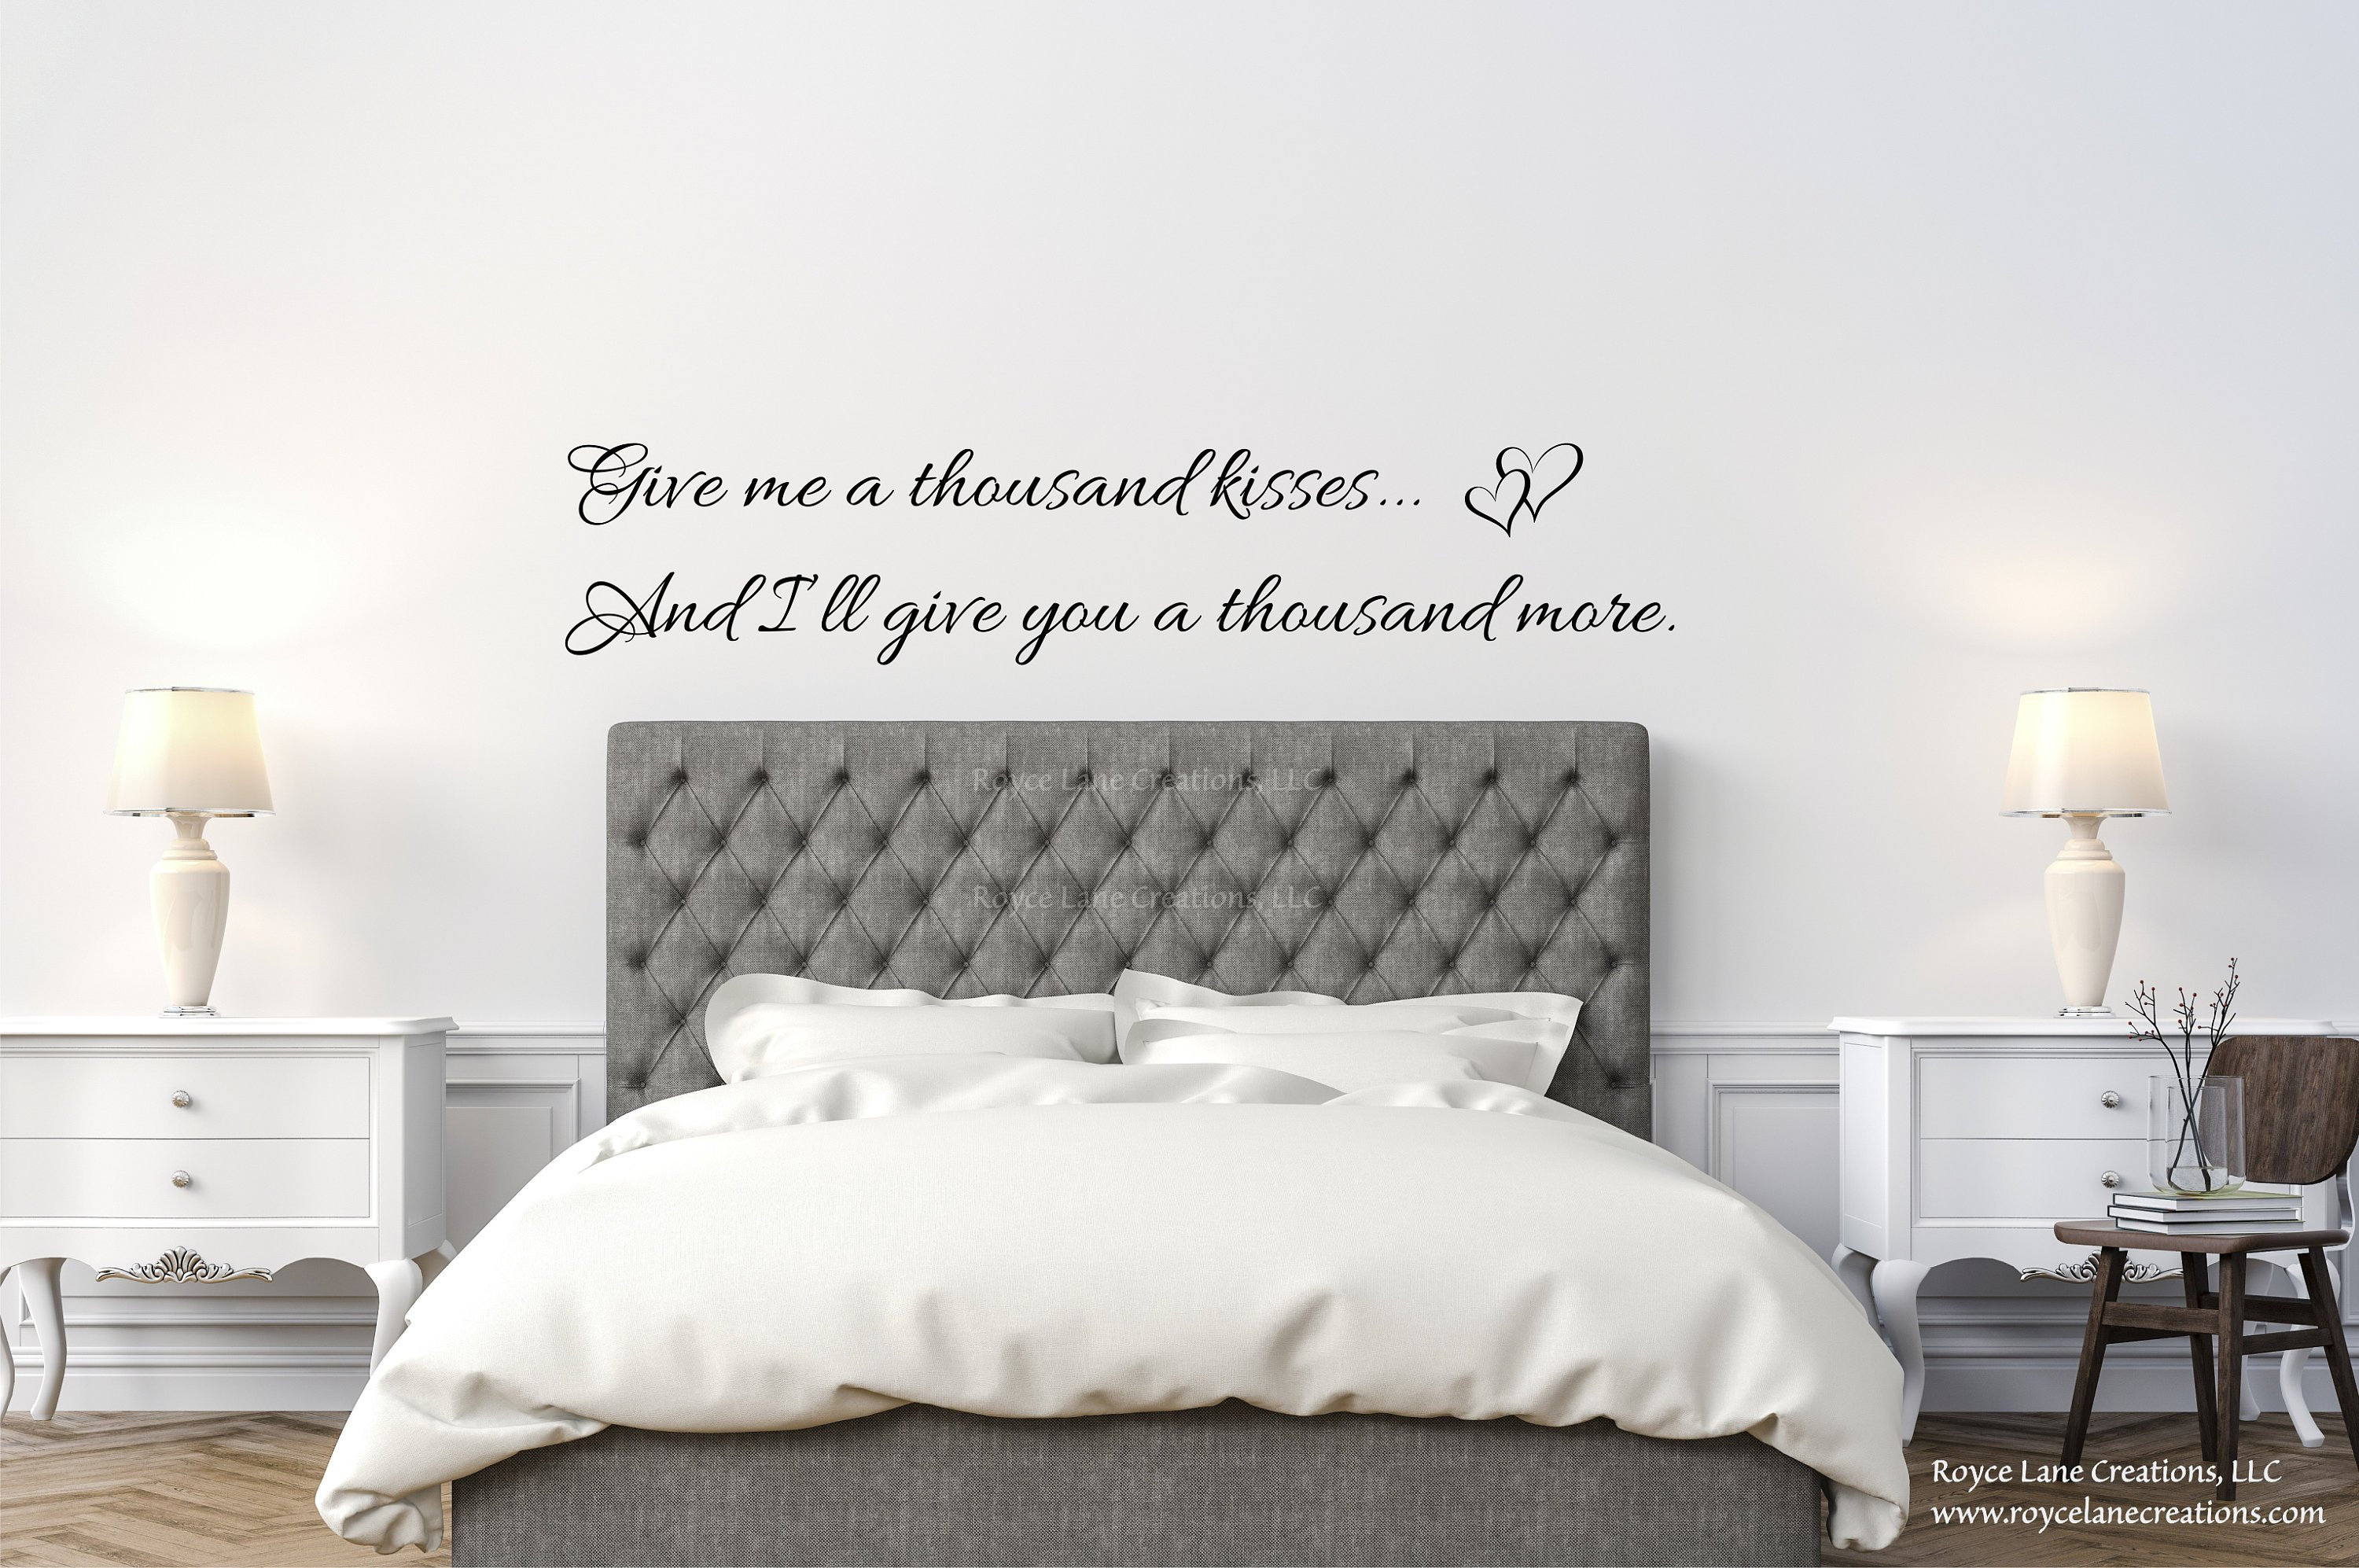 Give Me a Thousand Kisses Bedroom Wall Decal / Wall Quotes Bedroom/ Love  Quotes / Bedroom Wall Decor Over the Bed / Bedroom Wall Decor